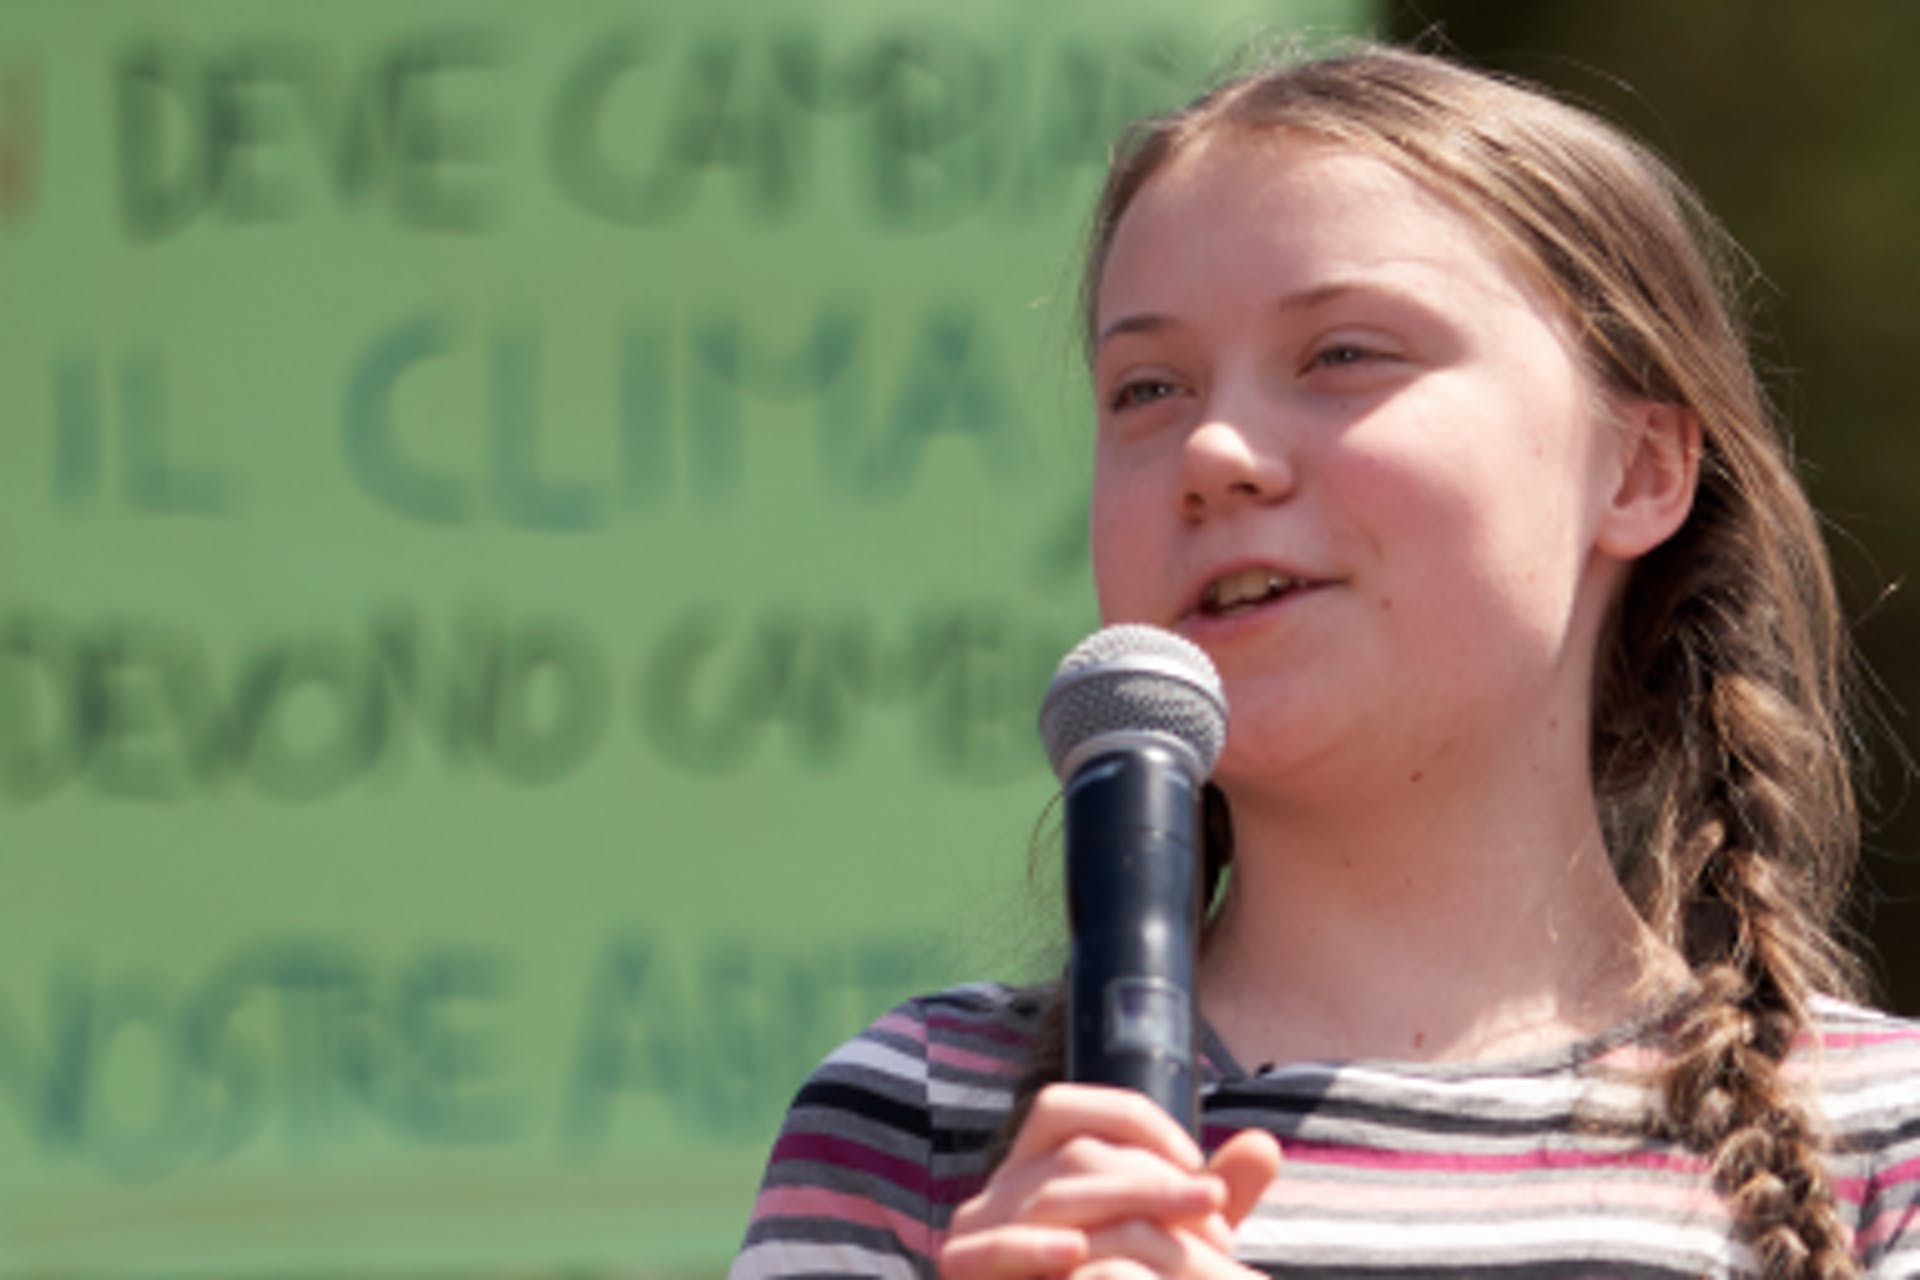 Greta Thunberg speaks through a microphone against the backdrop of a green sign